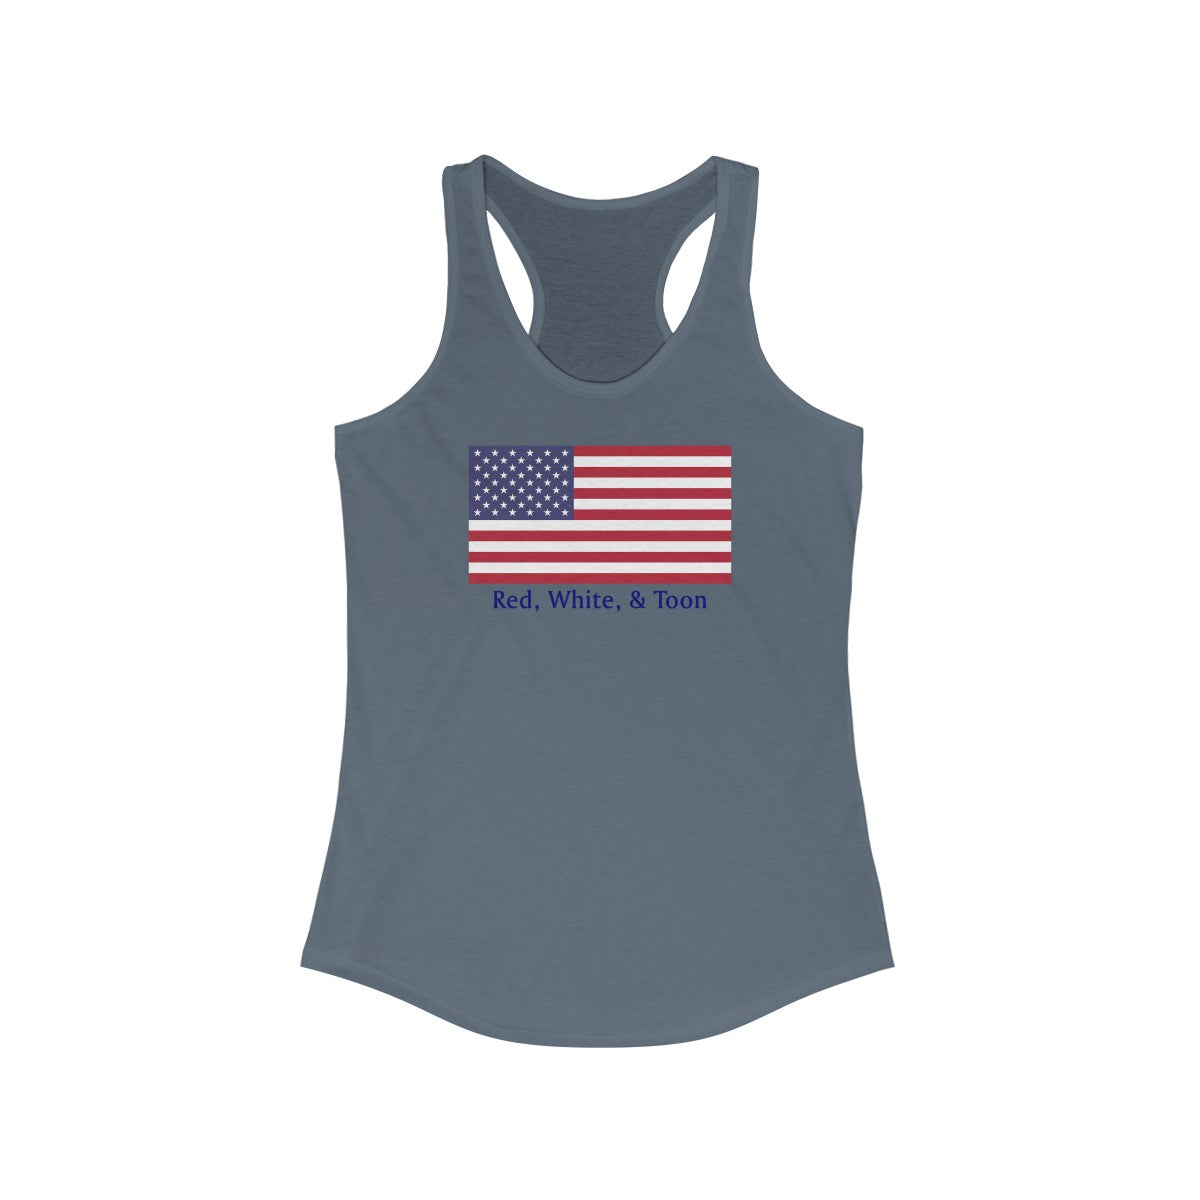 Pontoon Girl - Classic Flag - Red White and Toon Racerback Tank - TWO SIDED